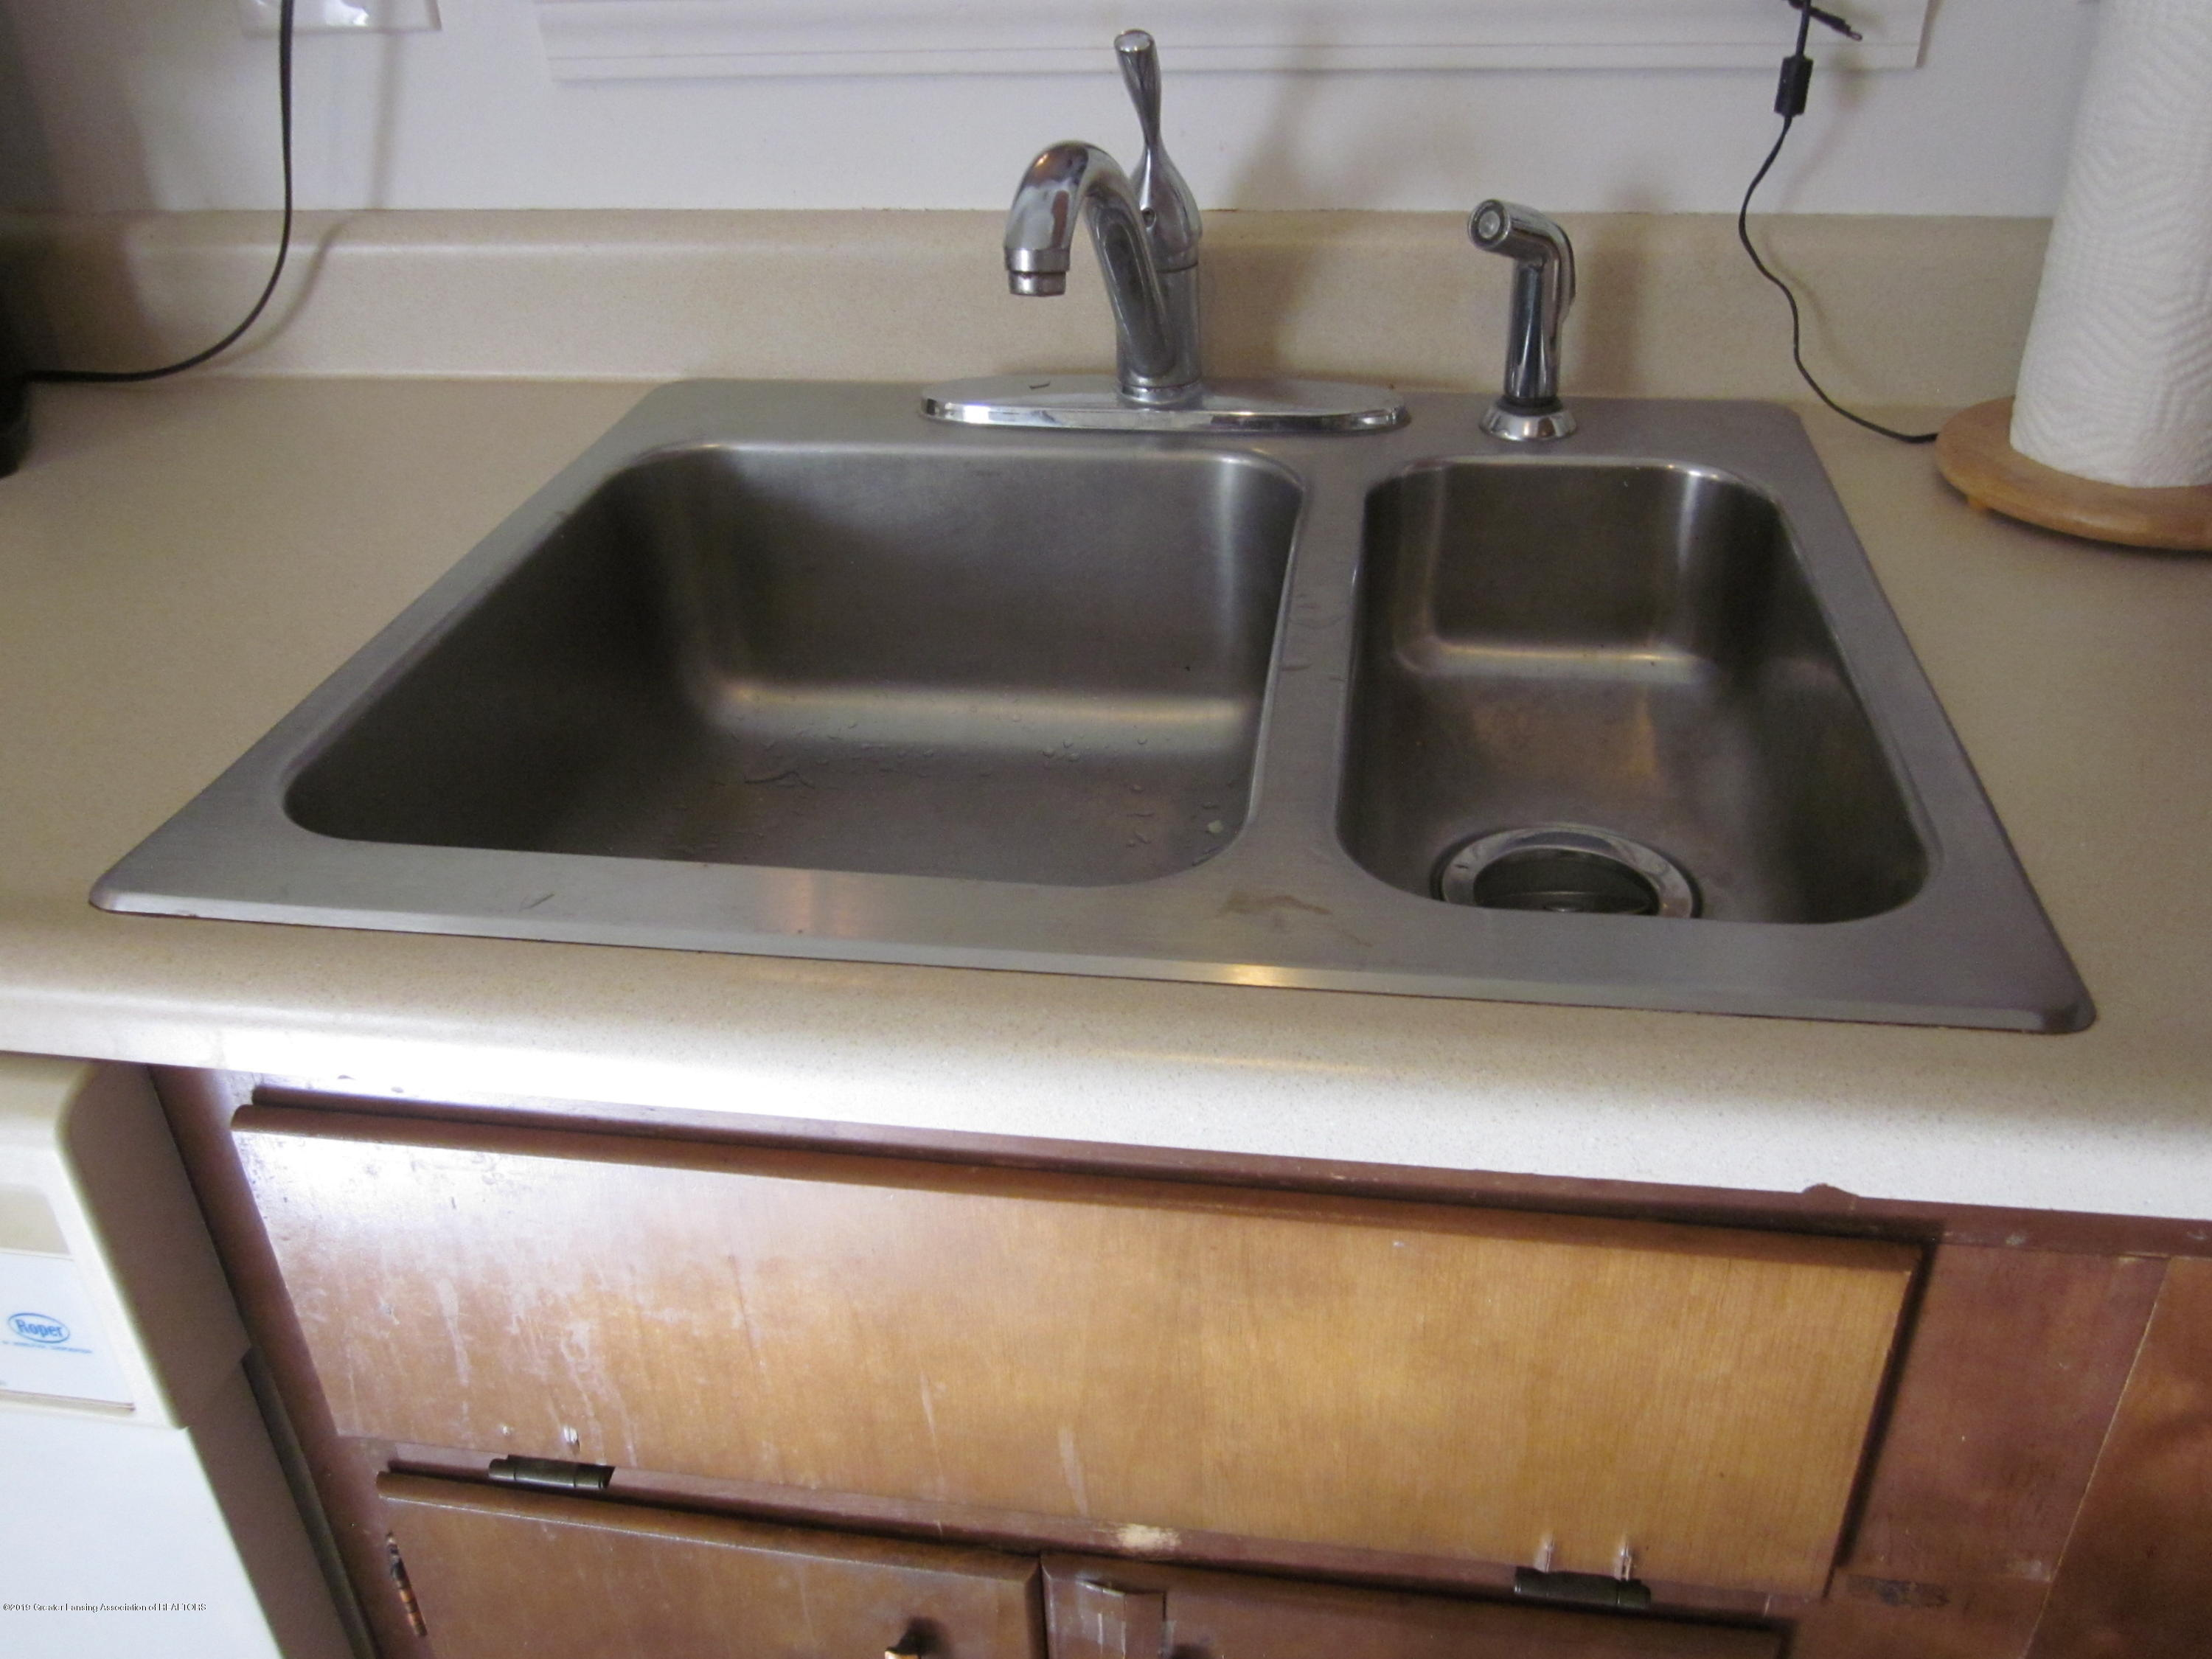 535 S Magnolia Ave - Kitchen sink - 5